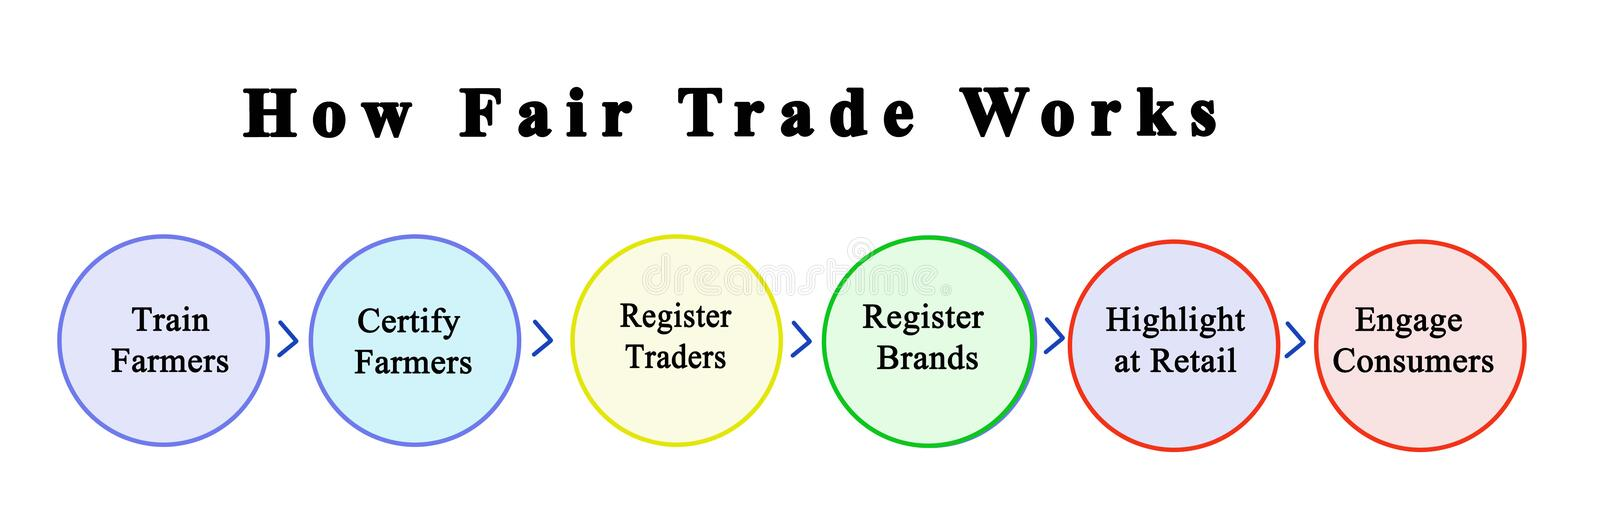 How Fair Trade  Works. Process enabling  Fair Trade to Work vector illustration